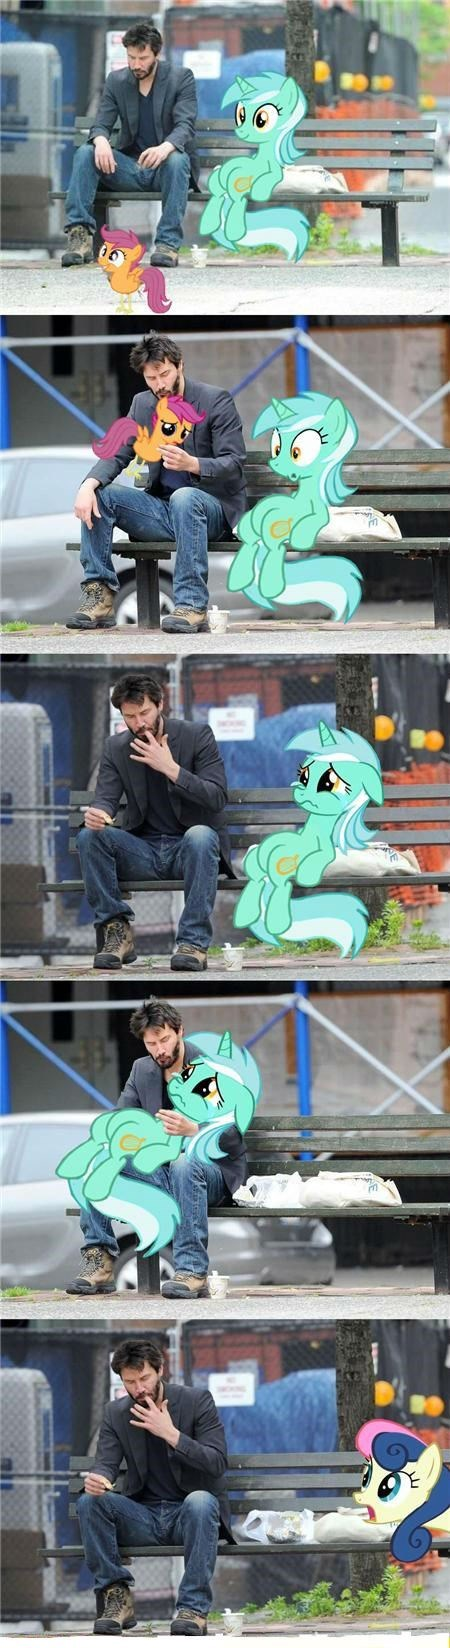 lyra,chicken,keanu,Scootaloo,bench